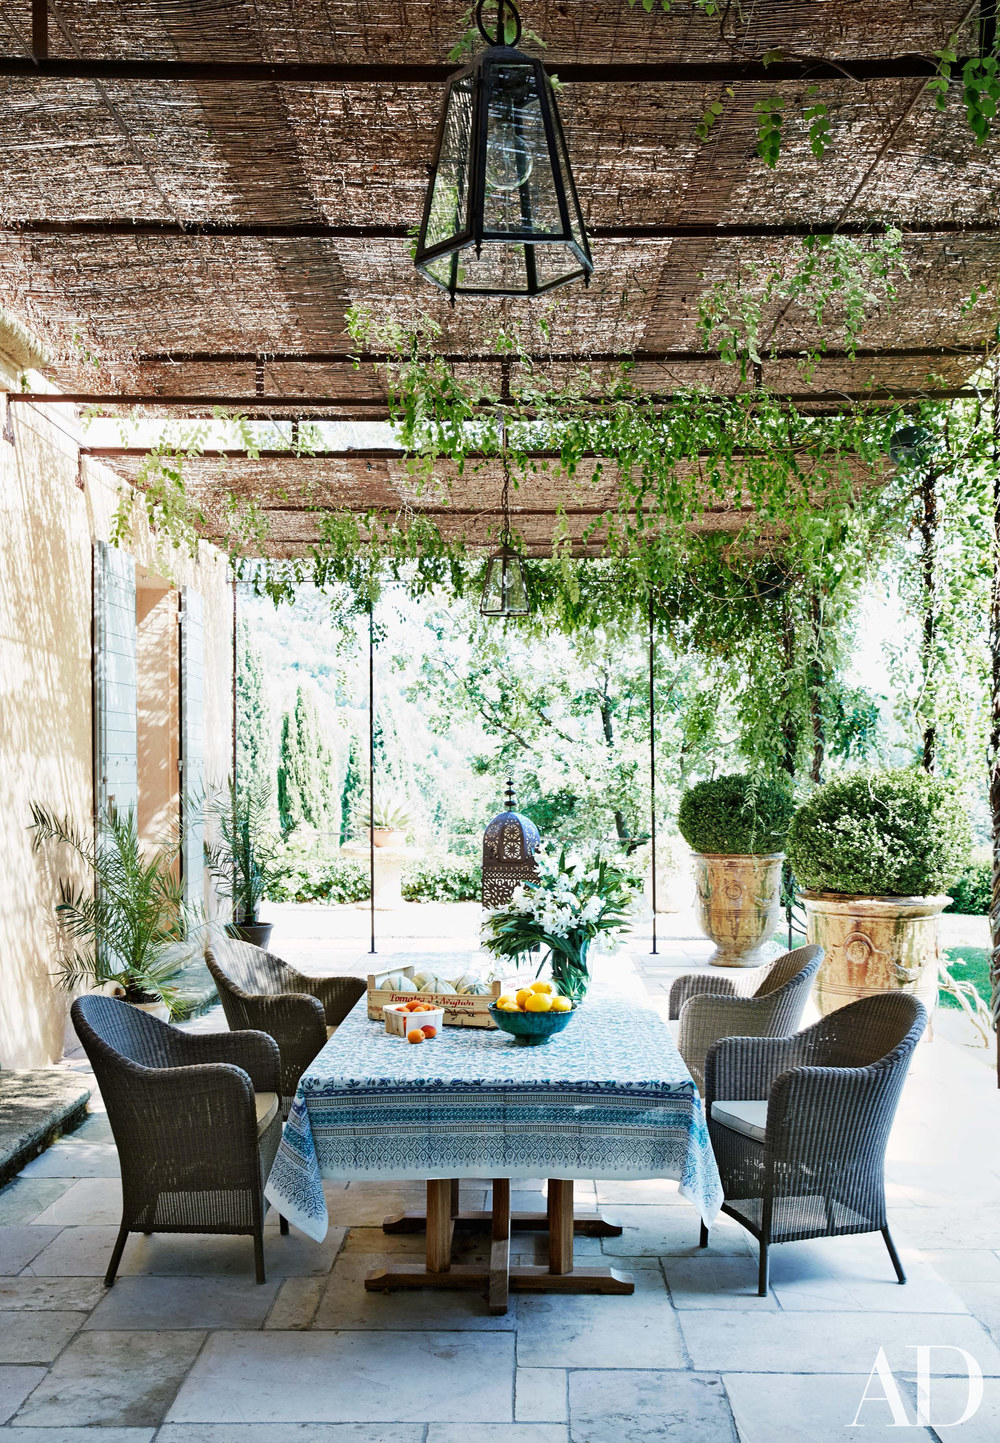 ROSE & IVY Journal Inspiring Interiors Aix En Provence